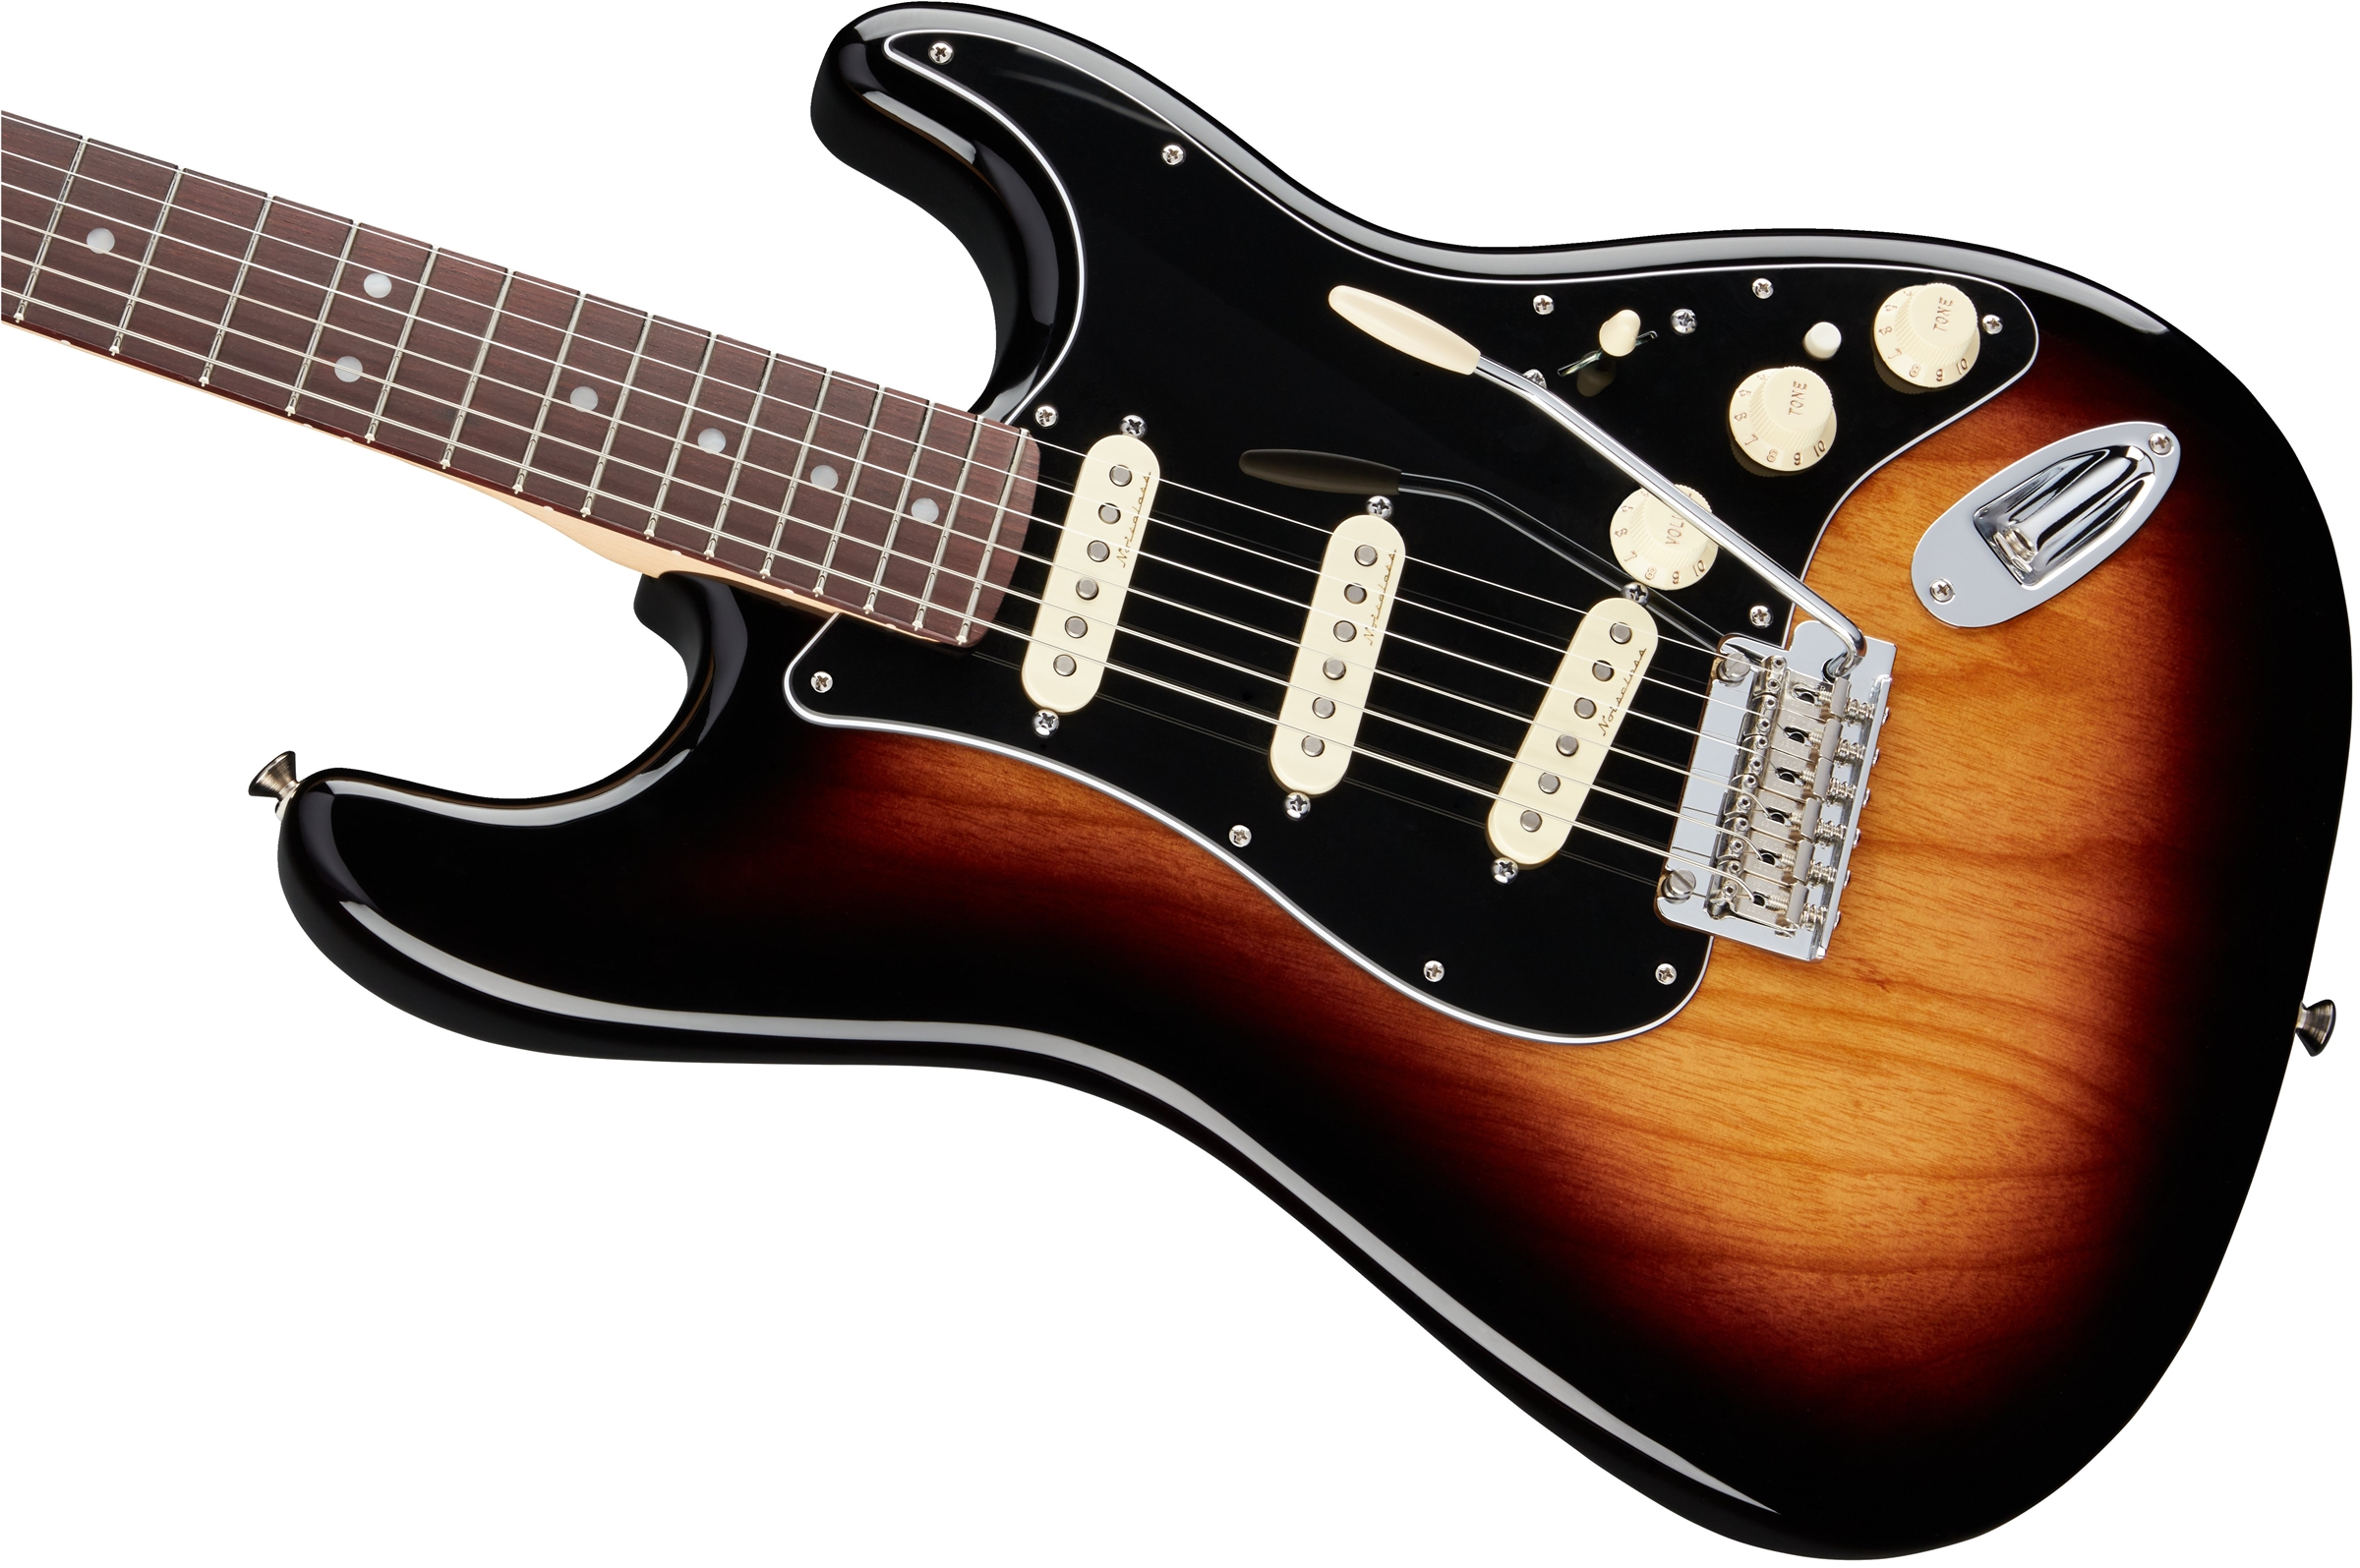 Fender Deluxe Players Strat Wiring Diagram Electrical Schematic Player Pdf Diagrams Electric Guitars Pickup